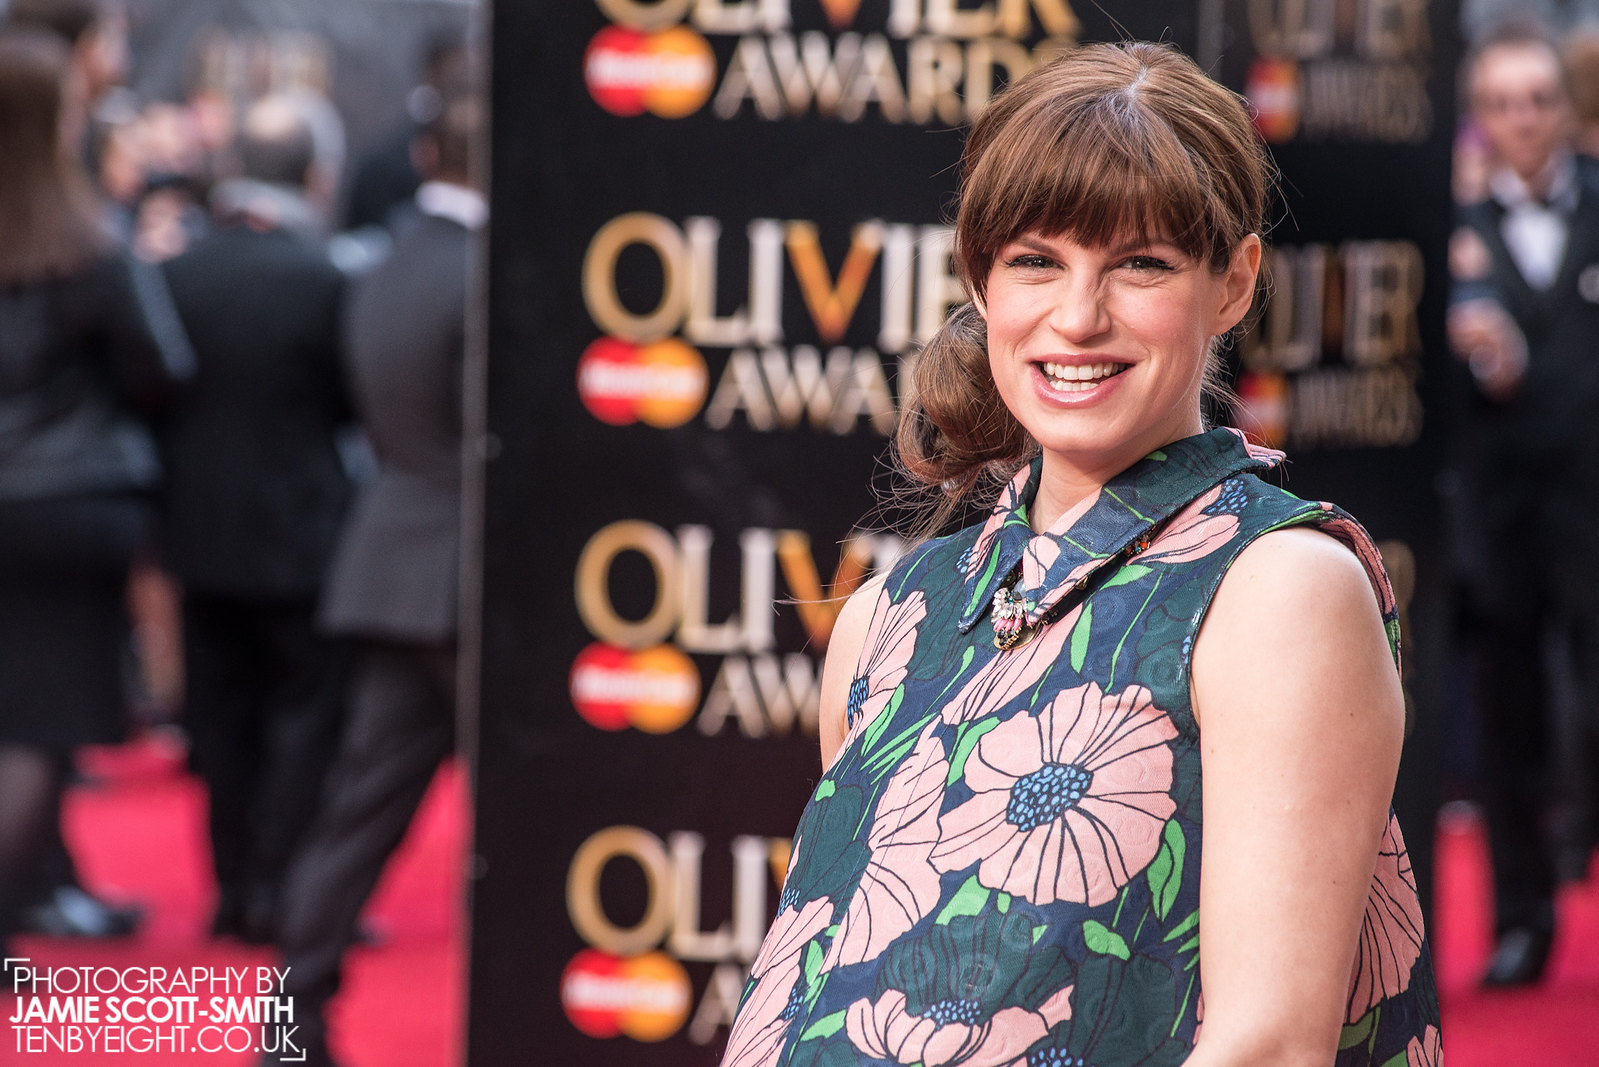 Photo Coverage: OLIVIERS 2015 - Lenny Henry, Brian May, SUNNY AFTERNOON, BEAUTIFUL And More On The Red Carpet!